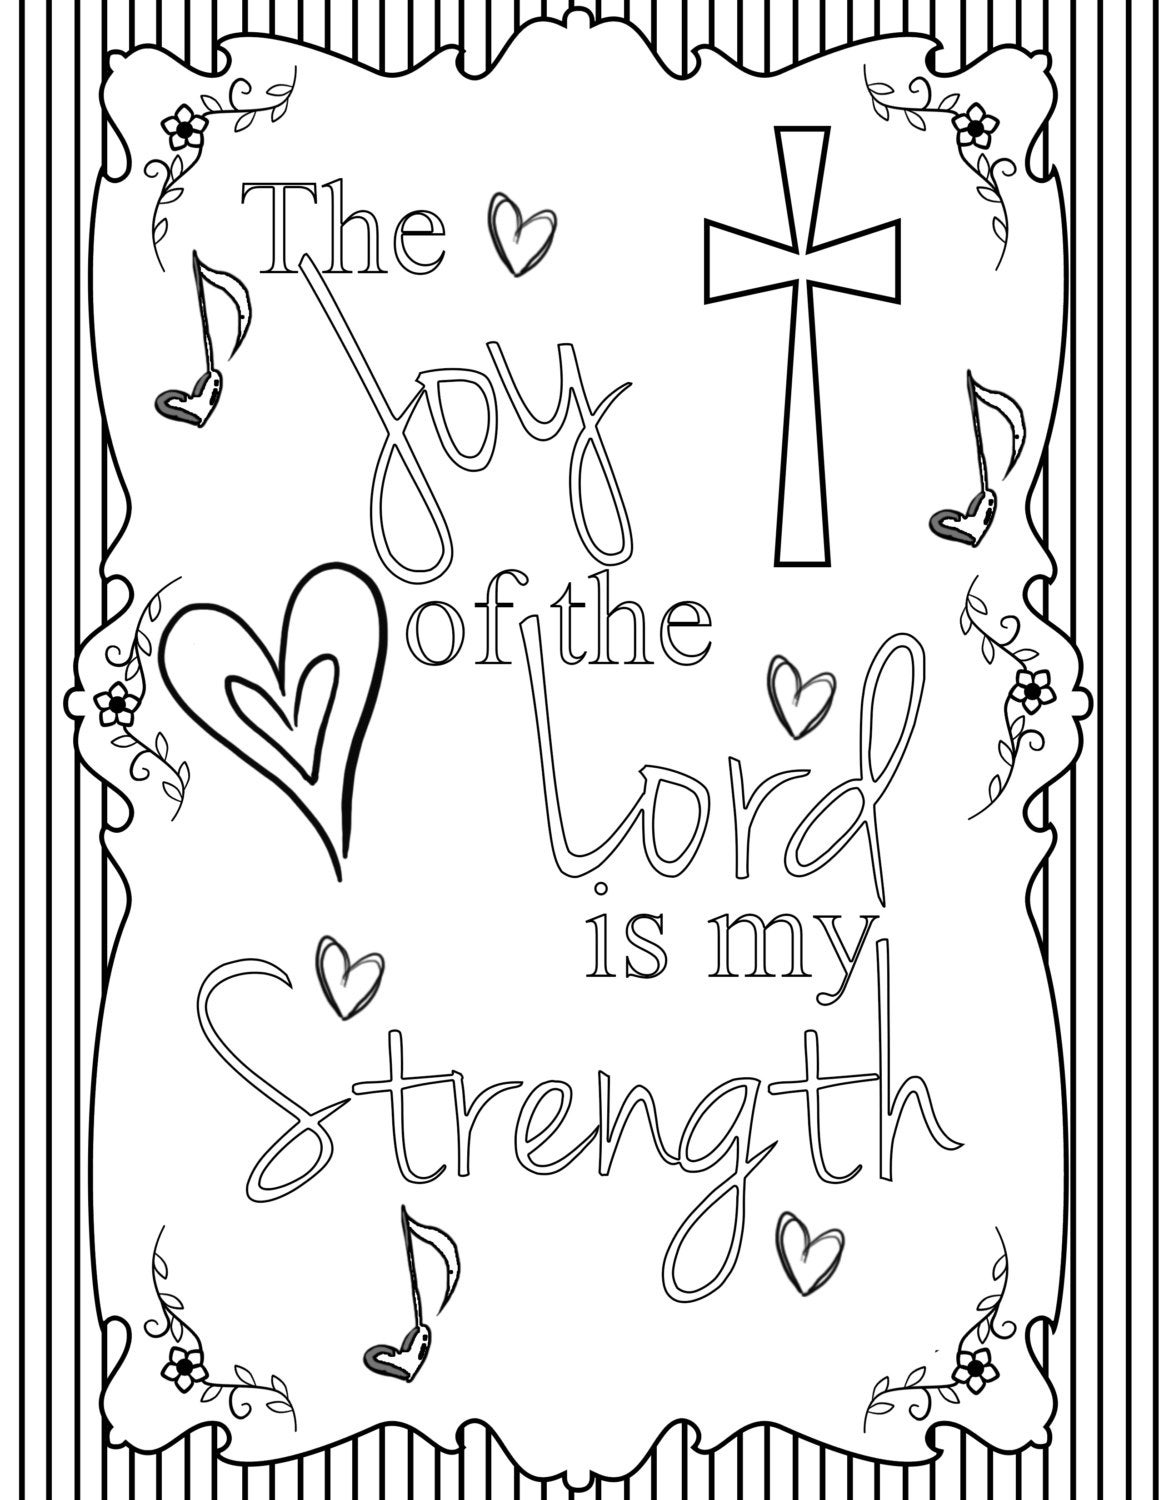 joy coloring pages joy coloring page free inside out coloring pages joy coloring pages